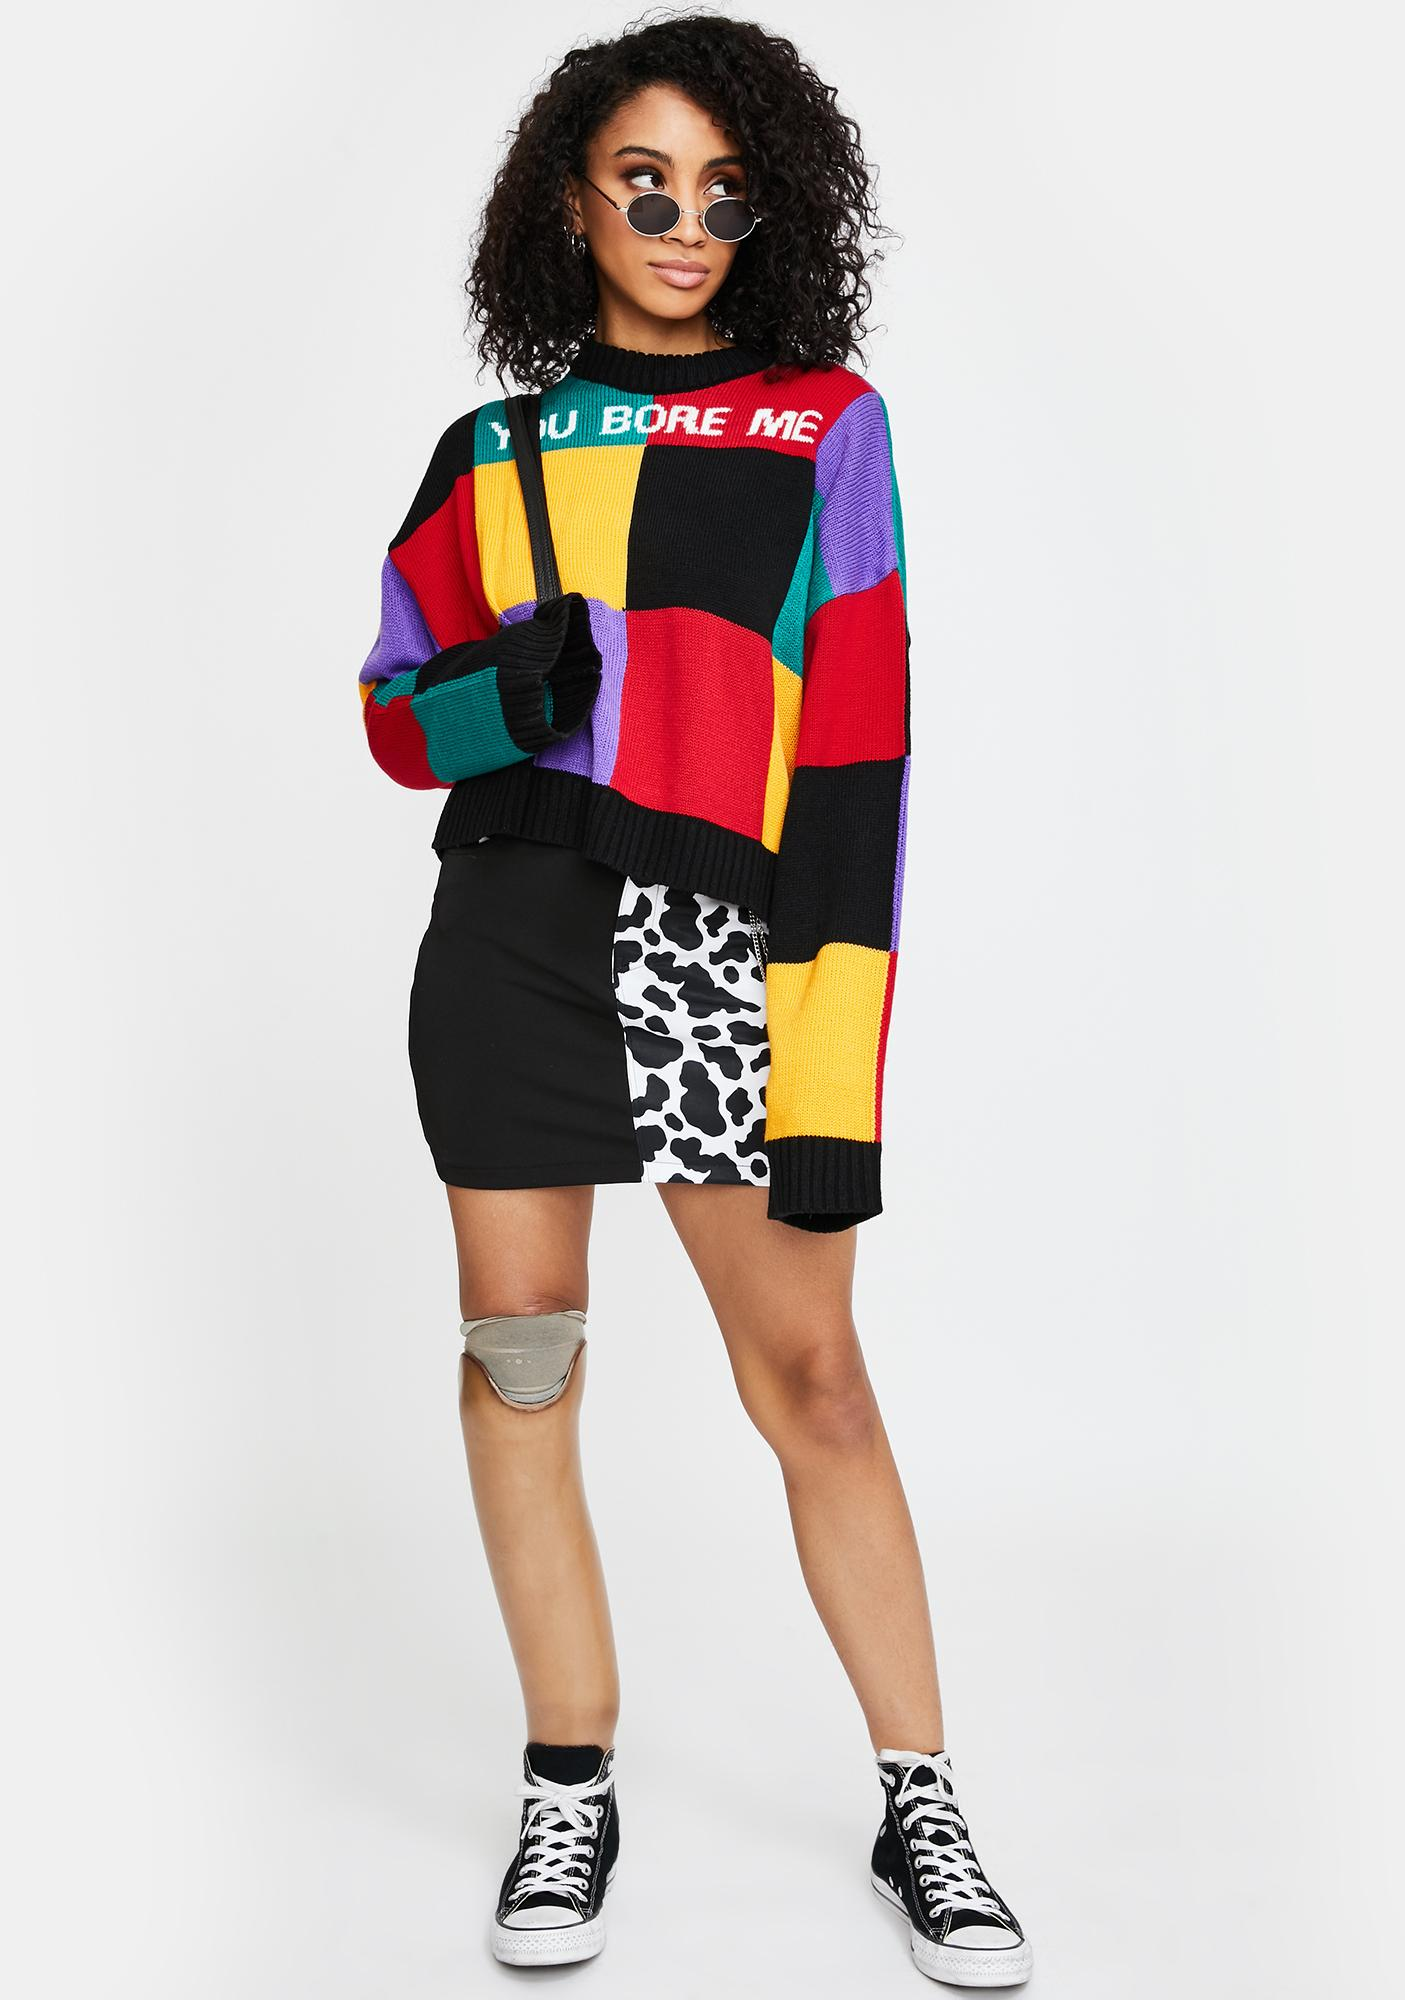 The Ragged Priest Bore Colorblock Knit Sweater